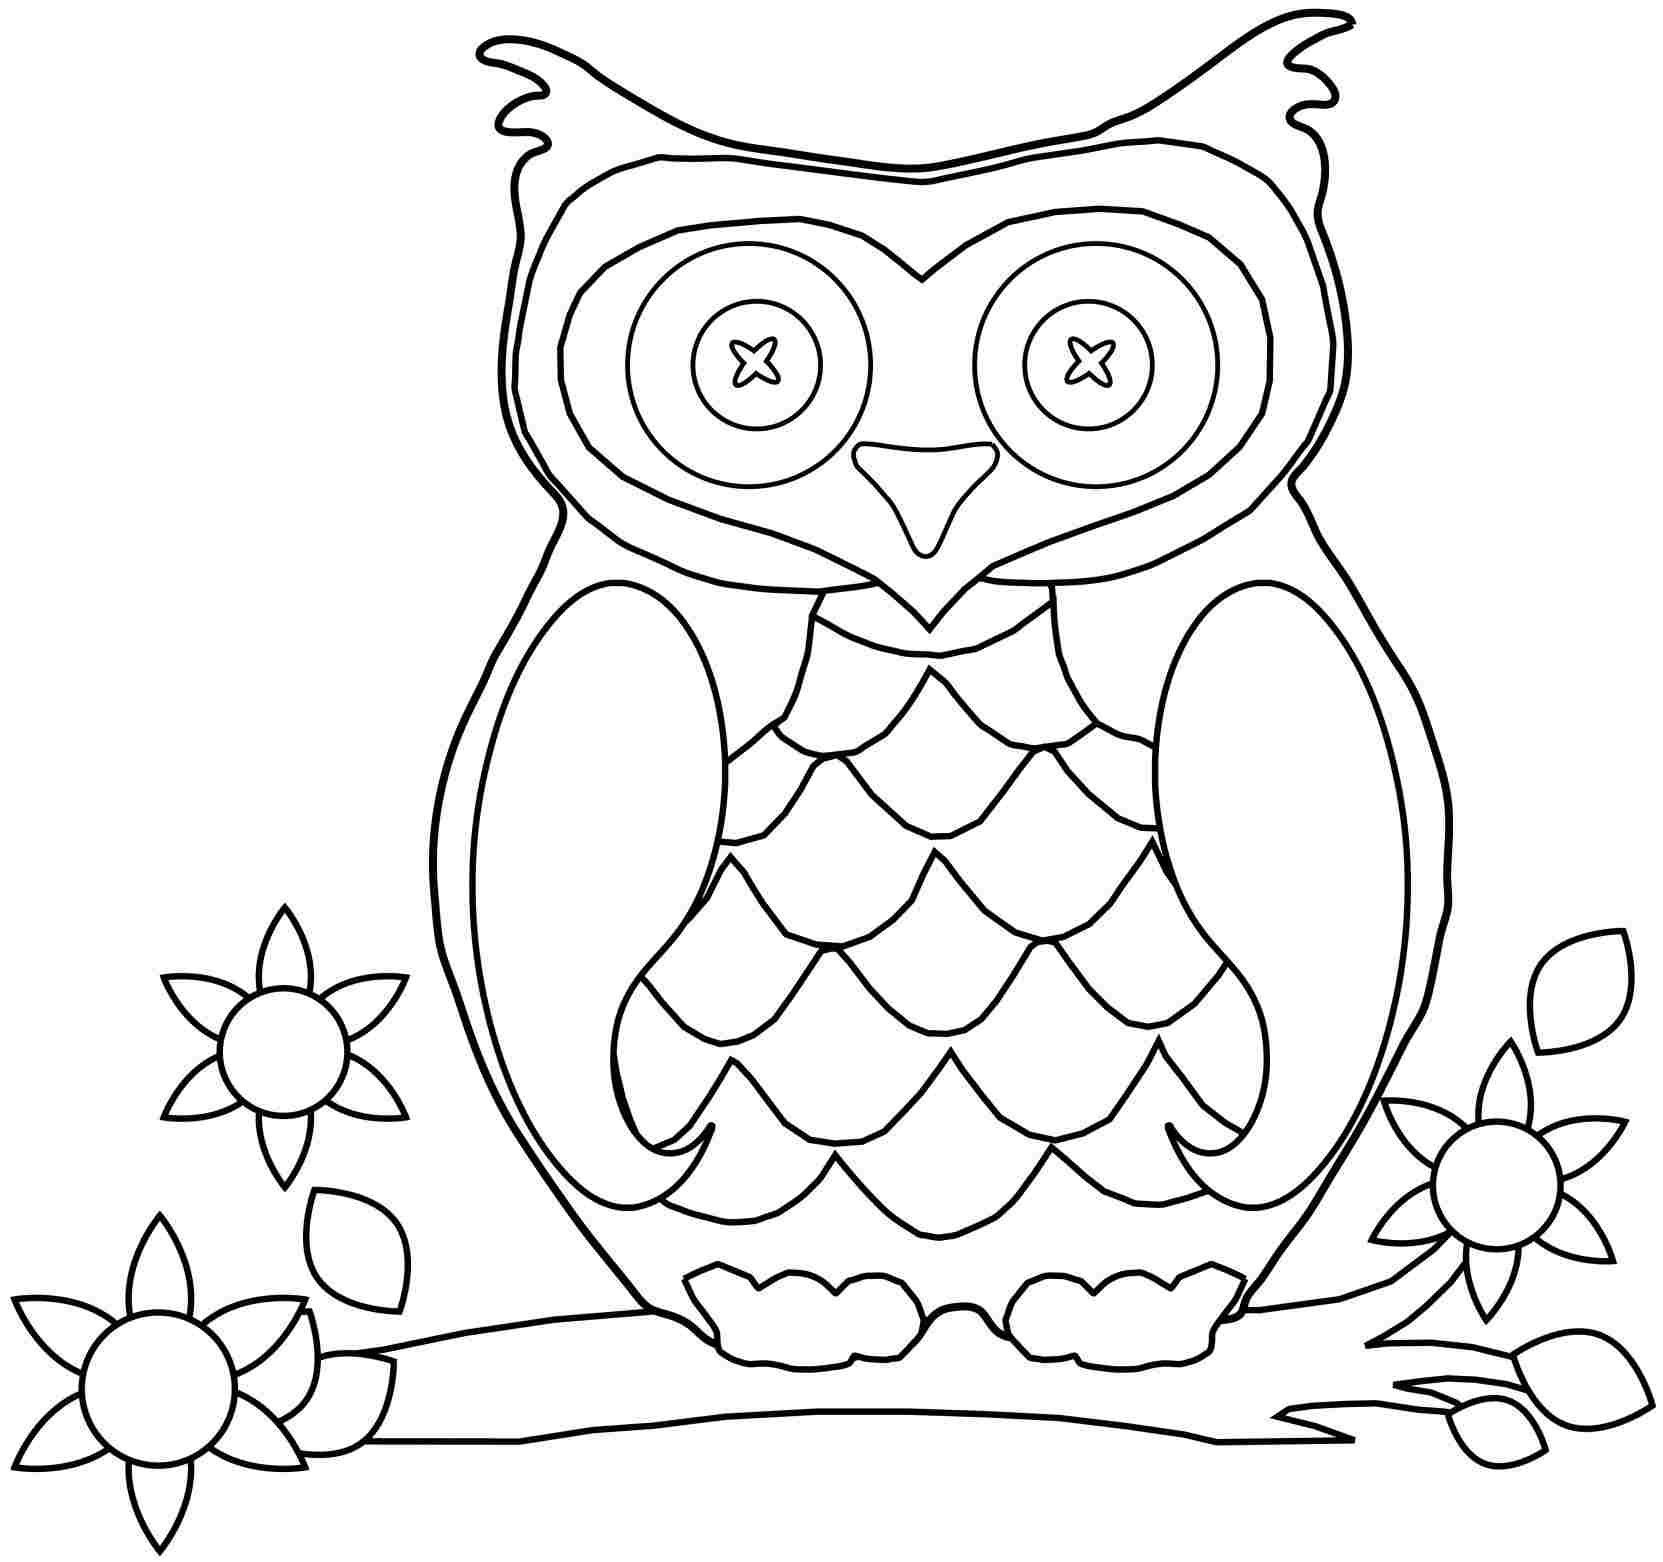 barn owl coloring pages printable owl coloring pages at getdrawings free download printable pages owl barn coloring